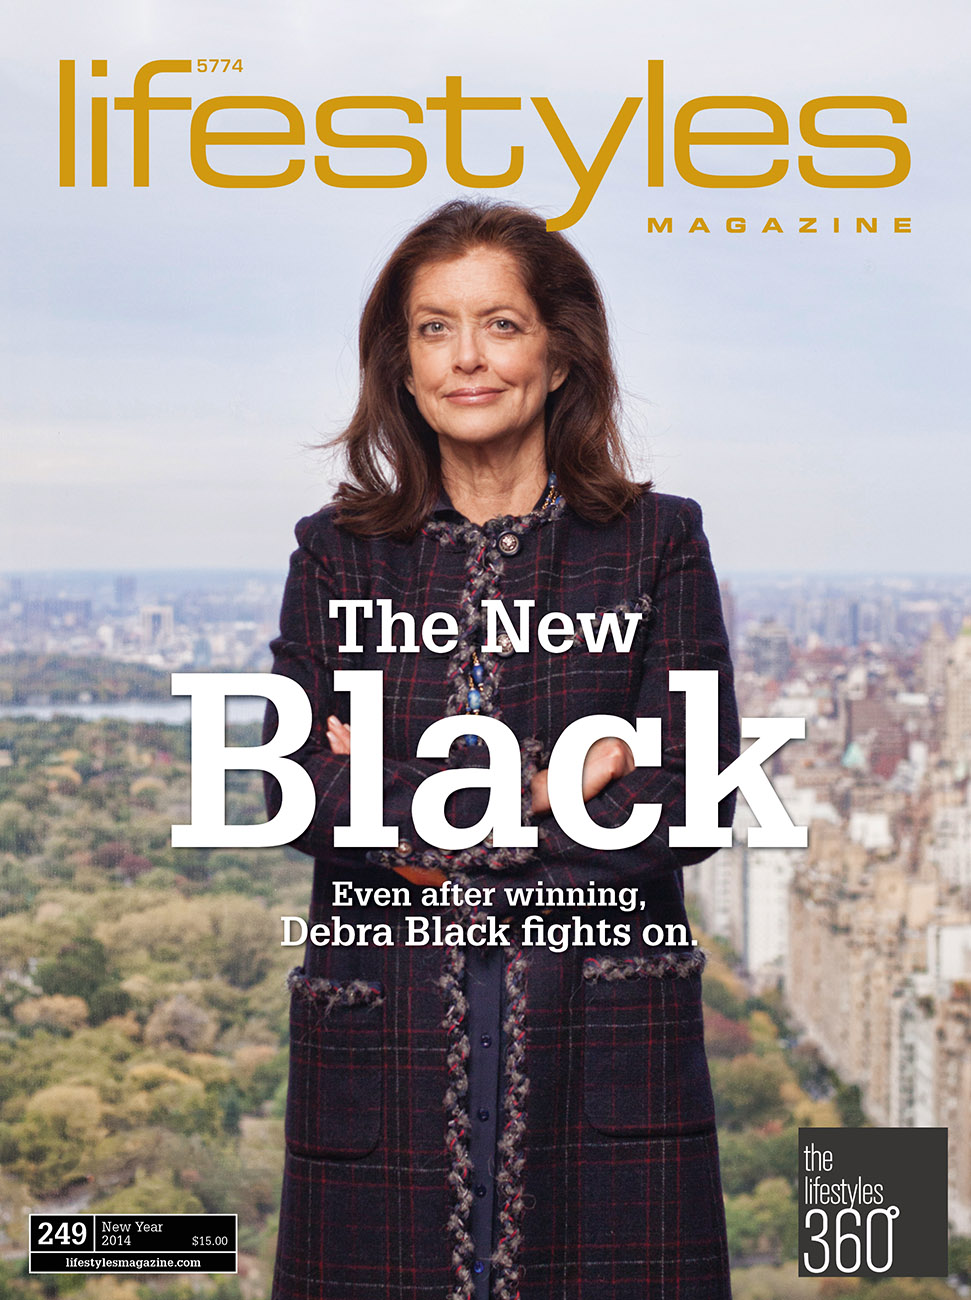 Dallas, Texas Editorial Photographer - Portrait of Debra Black in NYC Highrise Building Central Park View